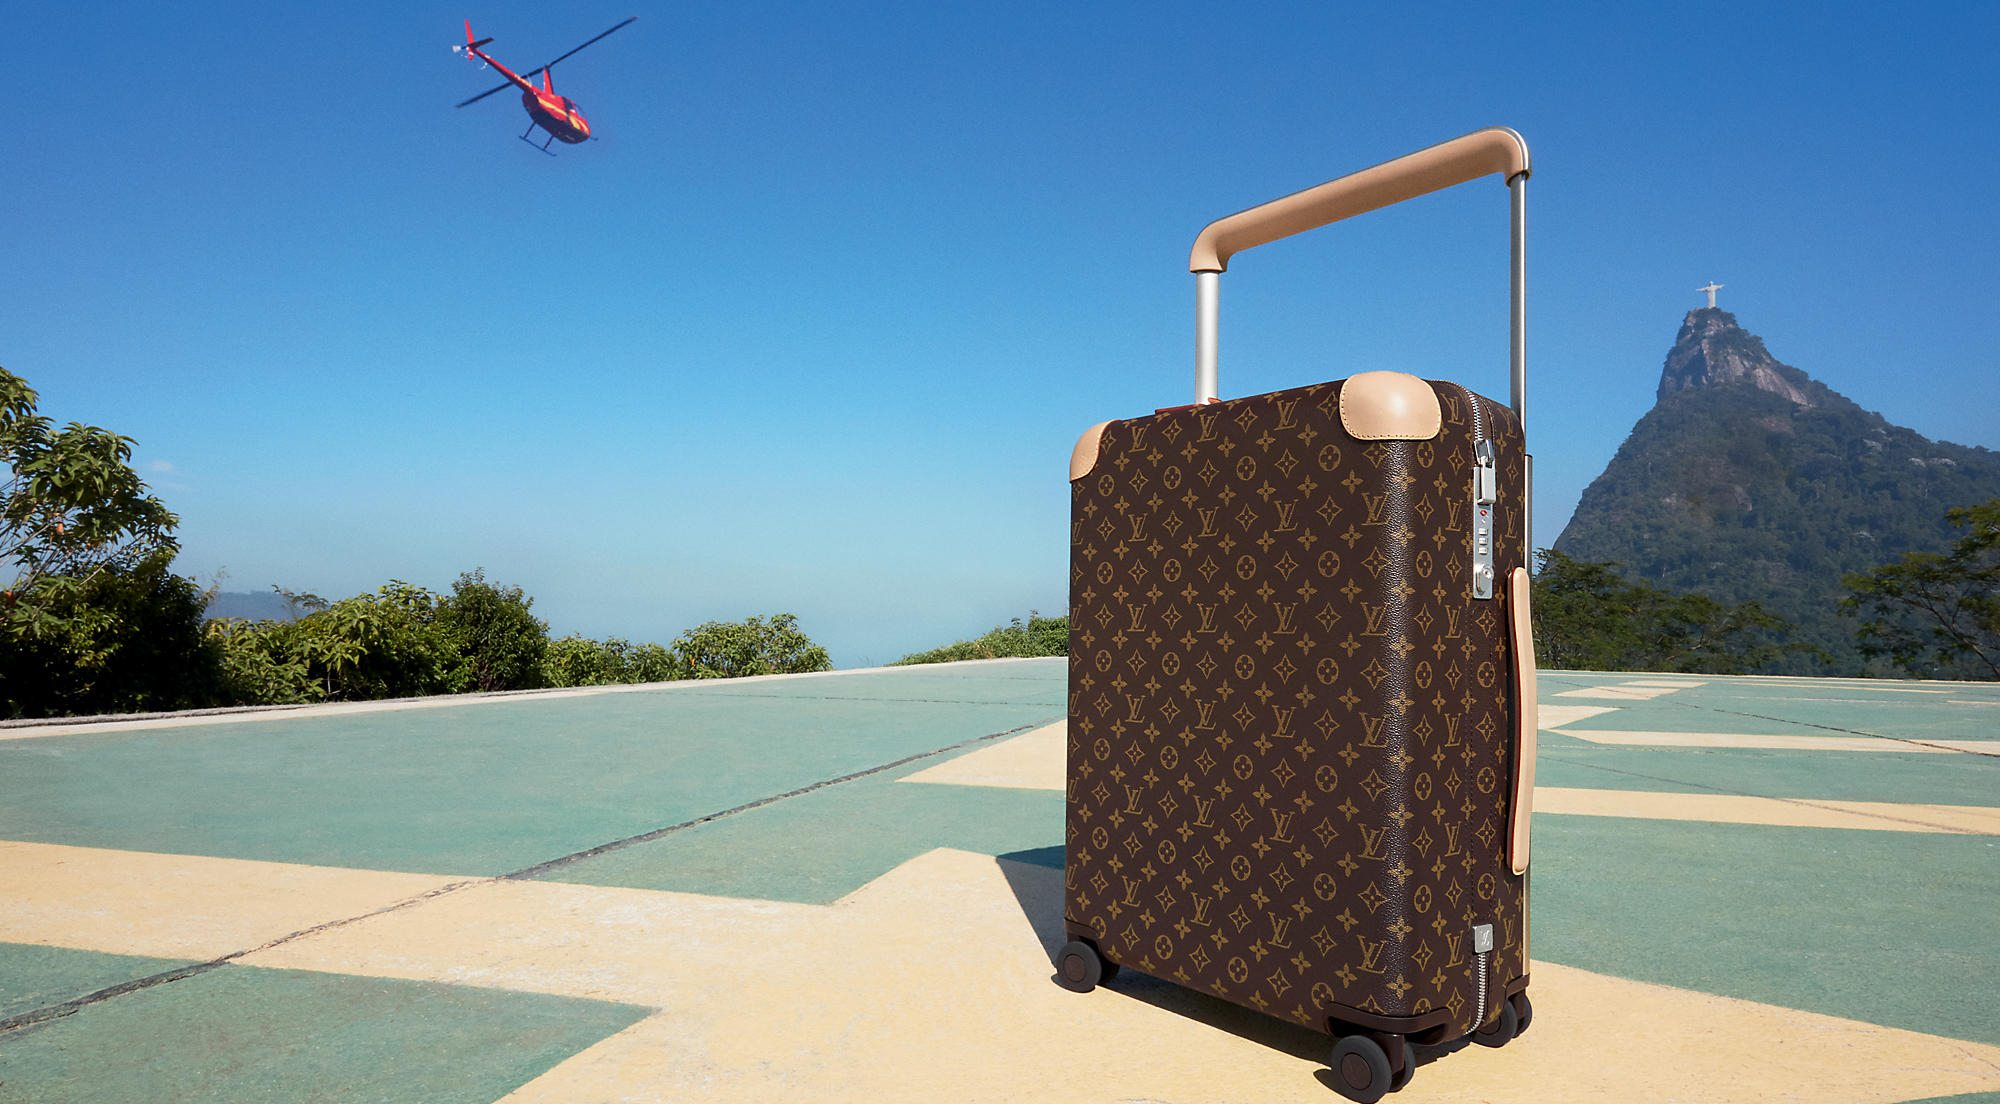 LOUIS VUITTON ROLLING LUGGAGE COLLECTION BY MARC NEWSON